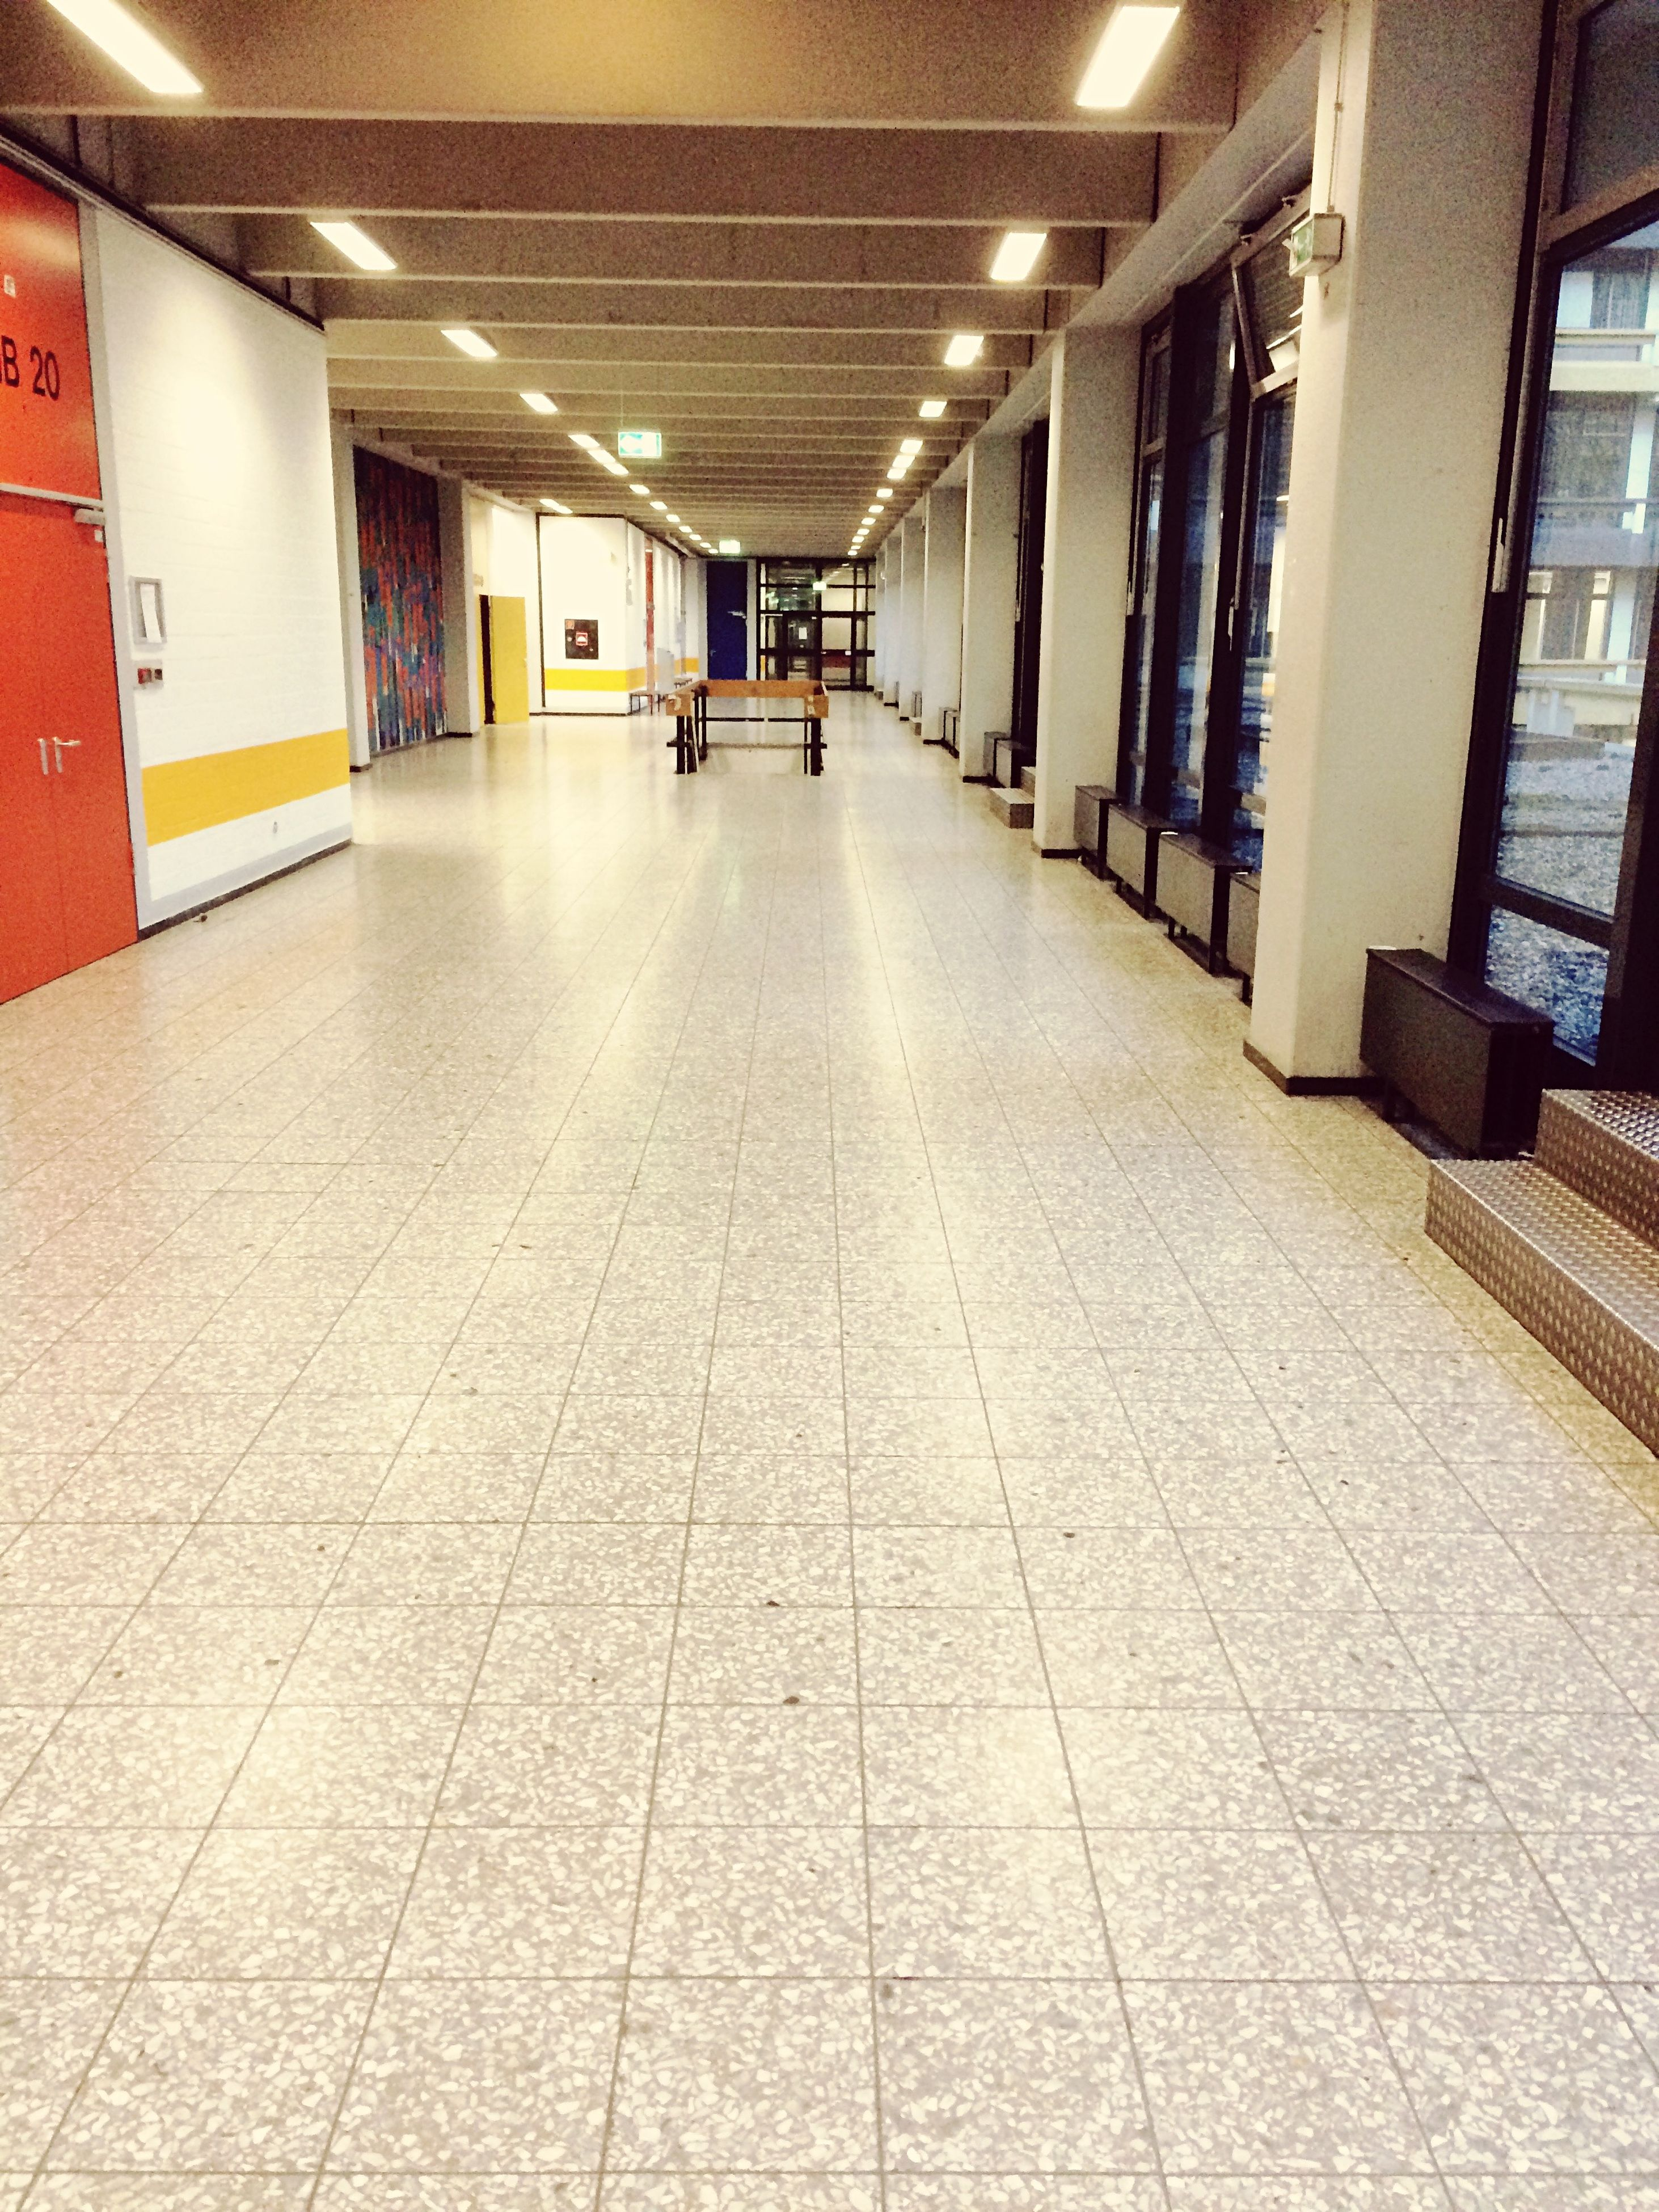 indoors, illuminated, architecture, the way forward, corridor, built structure, empty, tiled floor, diminishing perspective, flooring, ceiling, lighting equipment, in a row, absence, vanishing point, long, narrow, incidental people, building, underpass